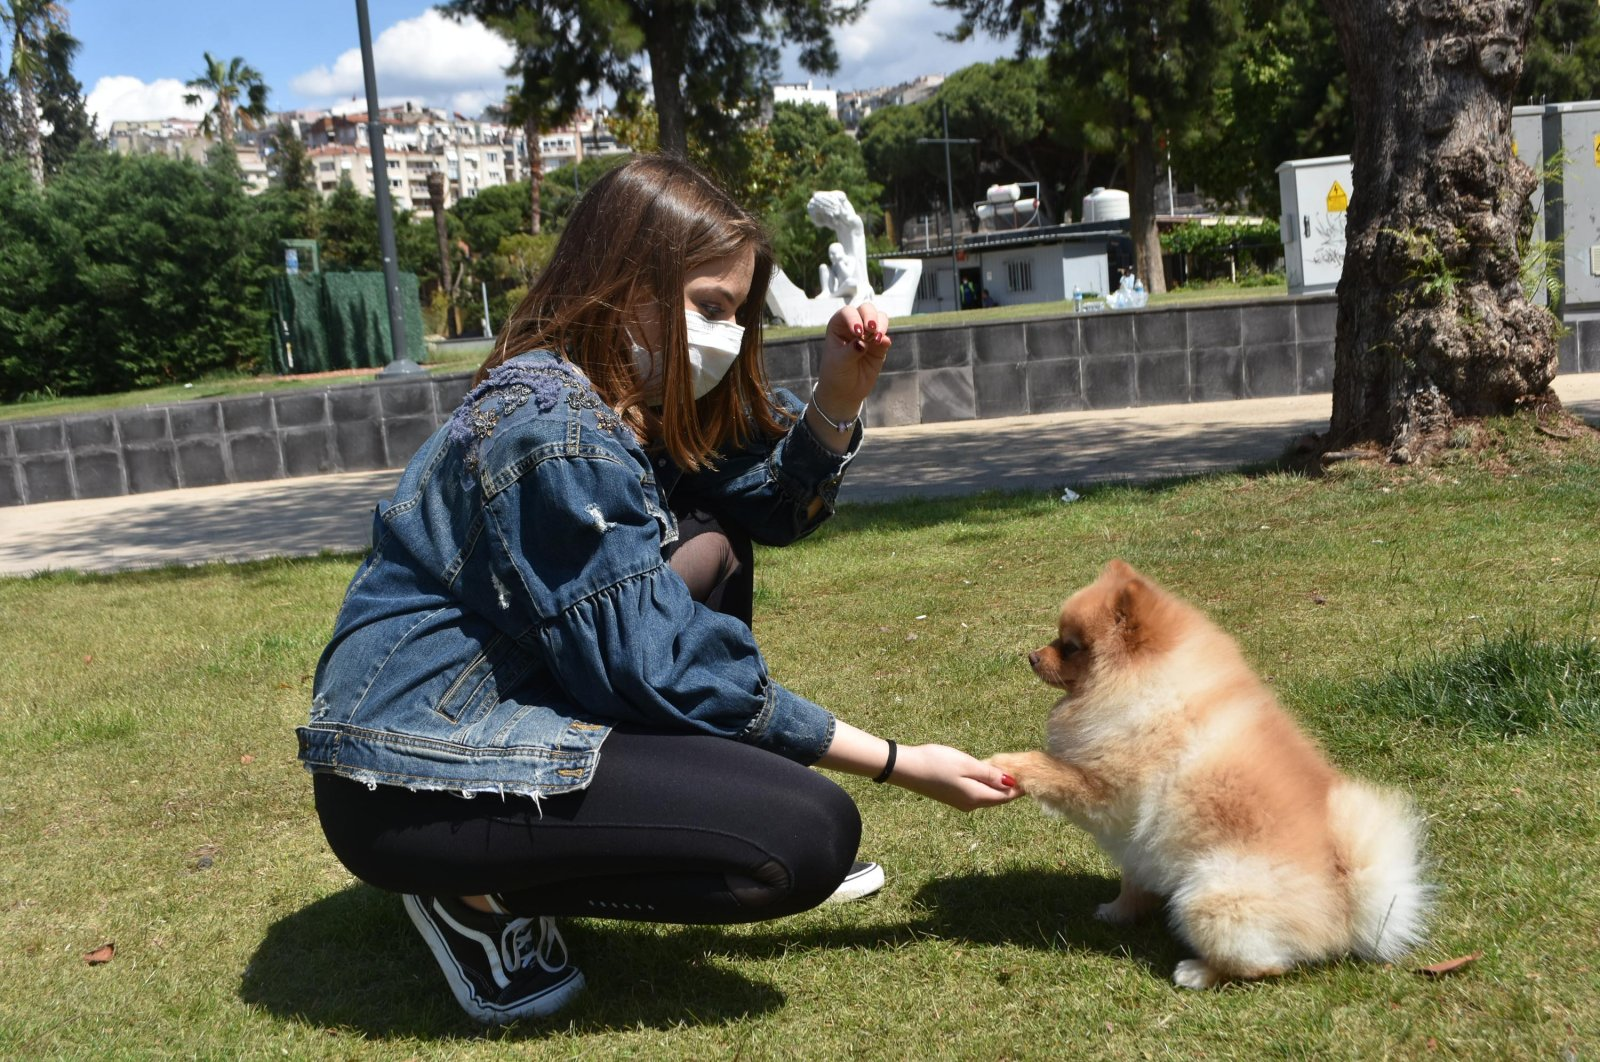 A woman plays with her dog in a park, Izmir, June 1, 2020. (DHA Photo)